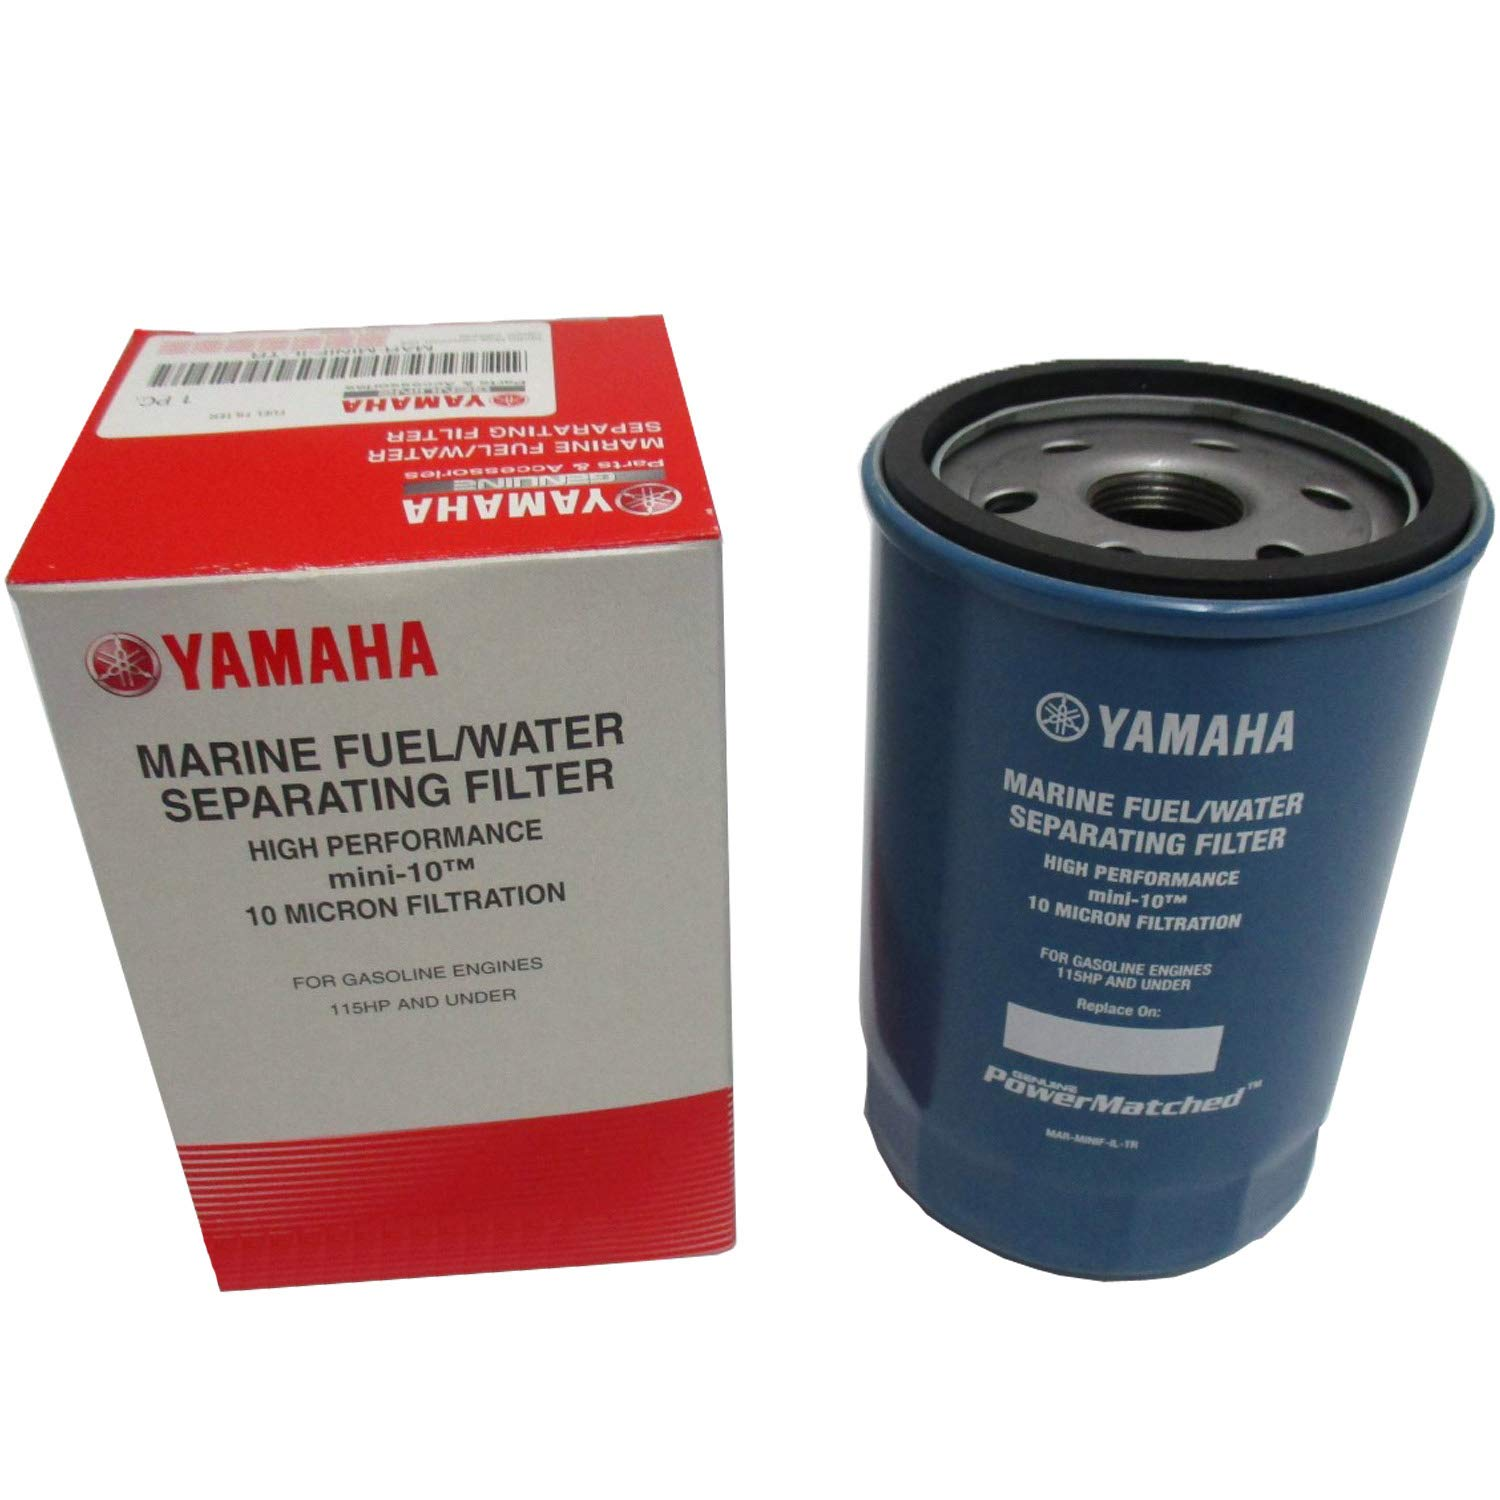 OEM Yamaha Mini-10 10-Micron Fuel/Water Separating Filter Only MAR-MINIF-IL-TR